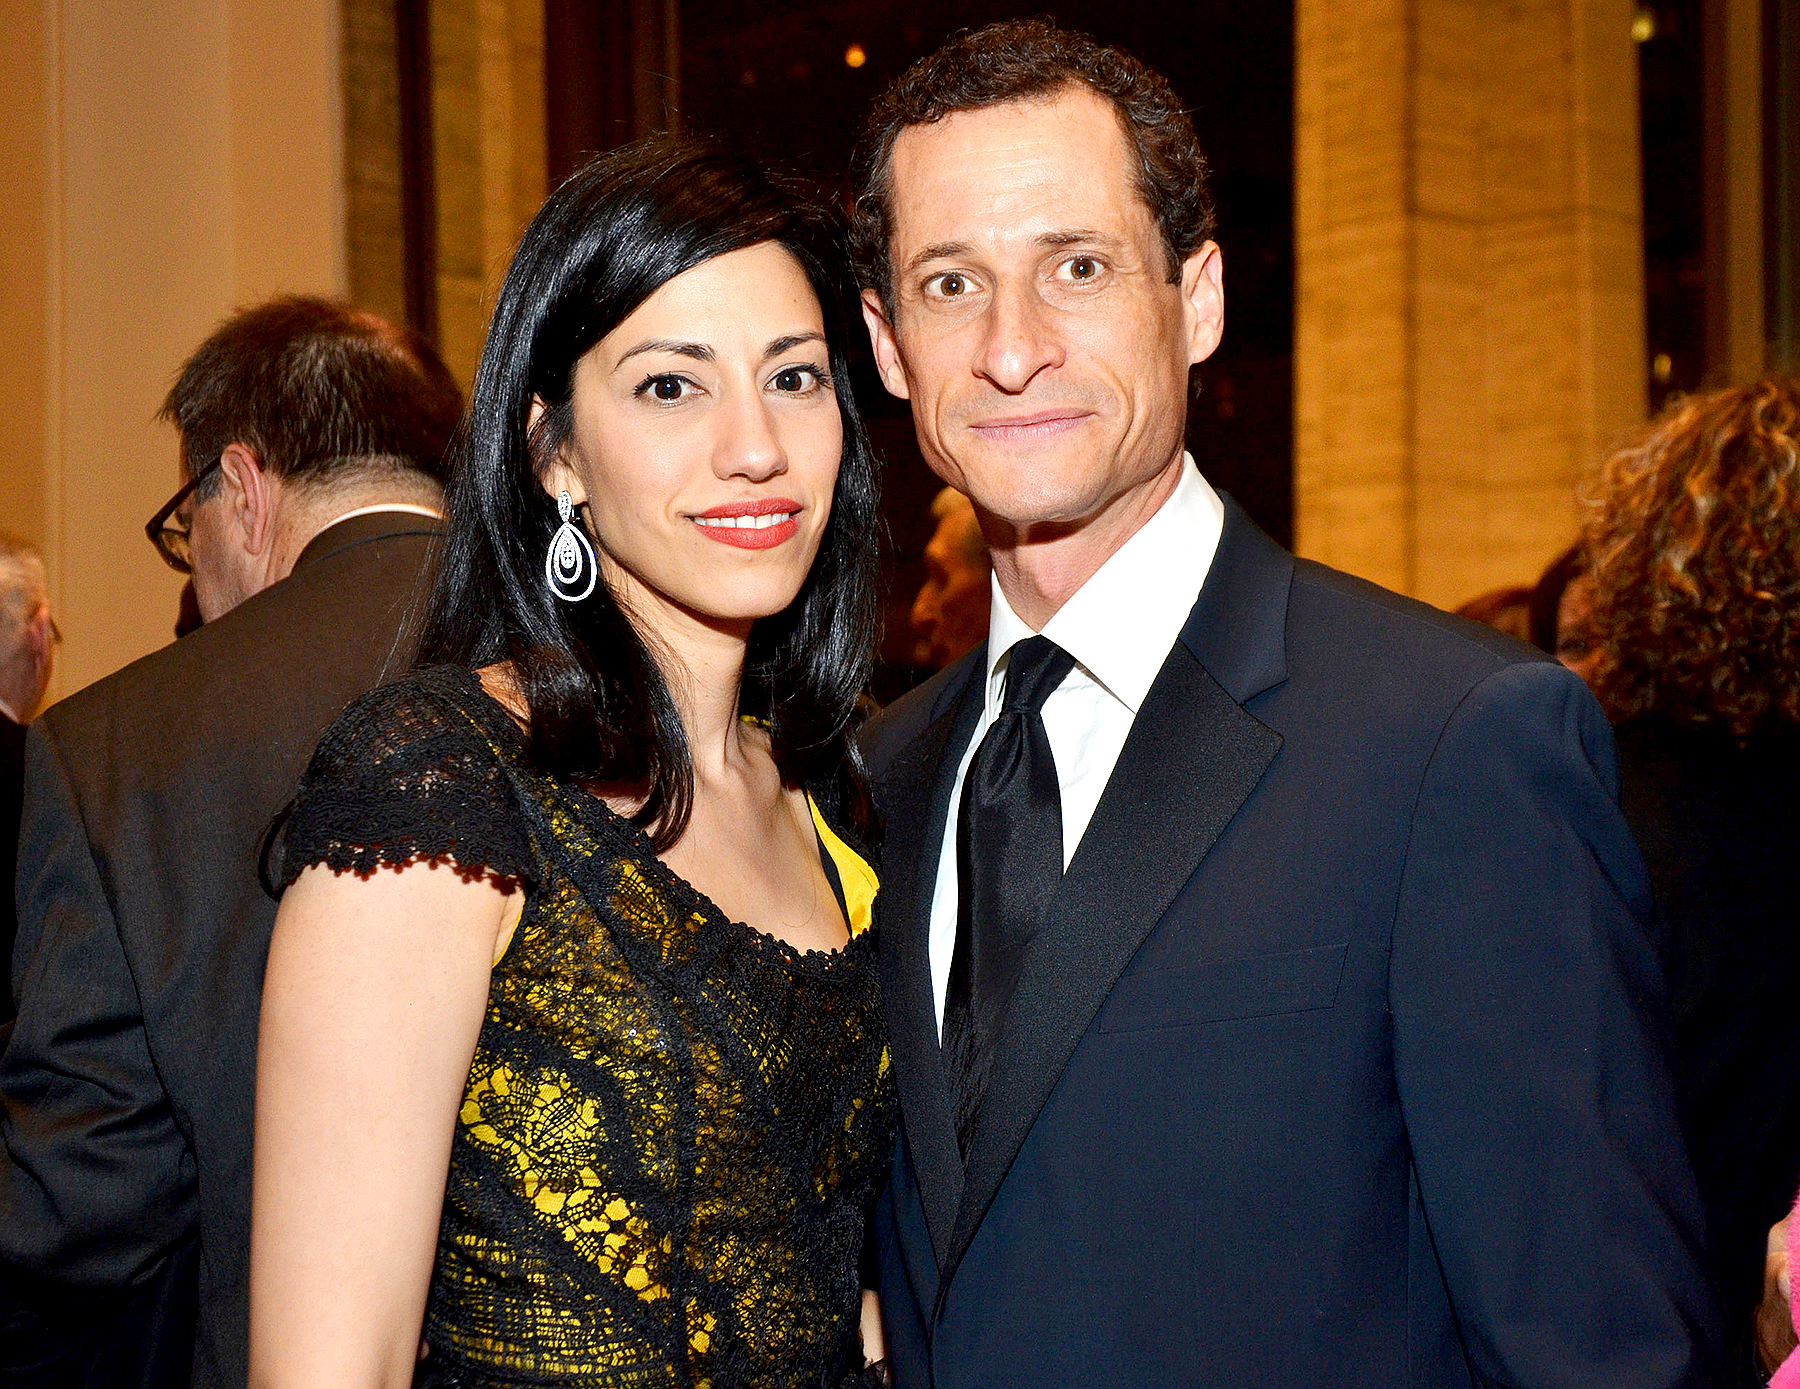 Huma Abedin and Anthony Weiner to settle divorce out of court